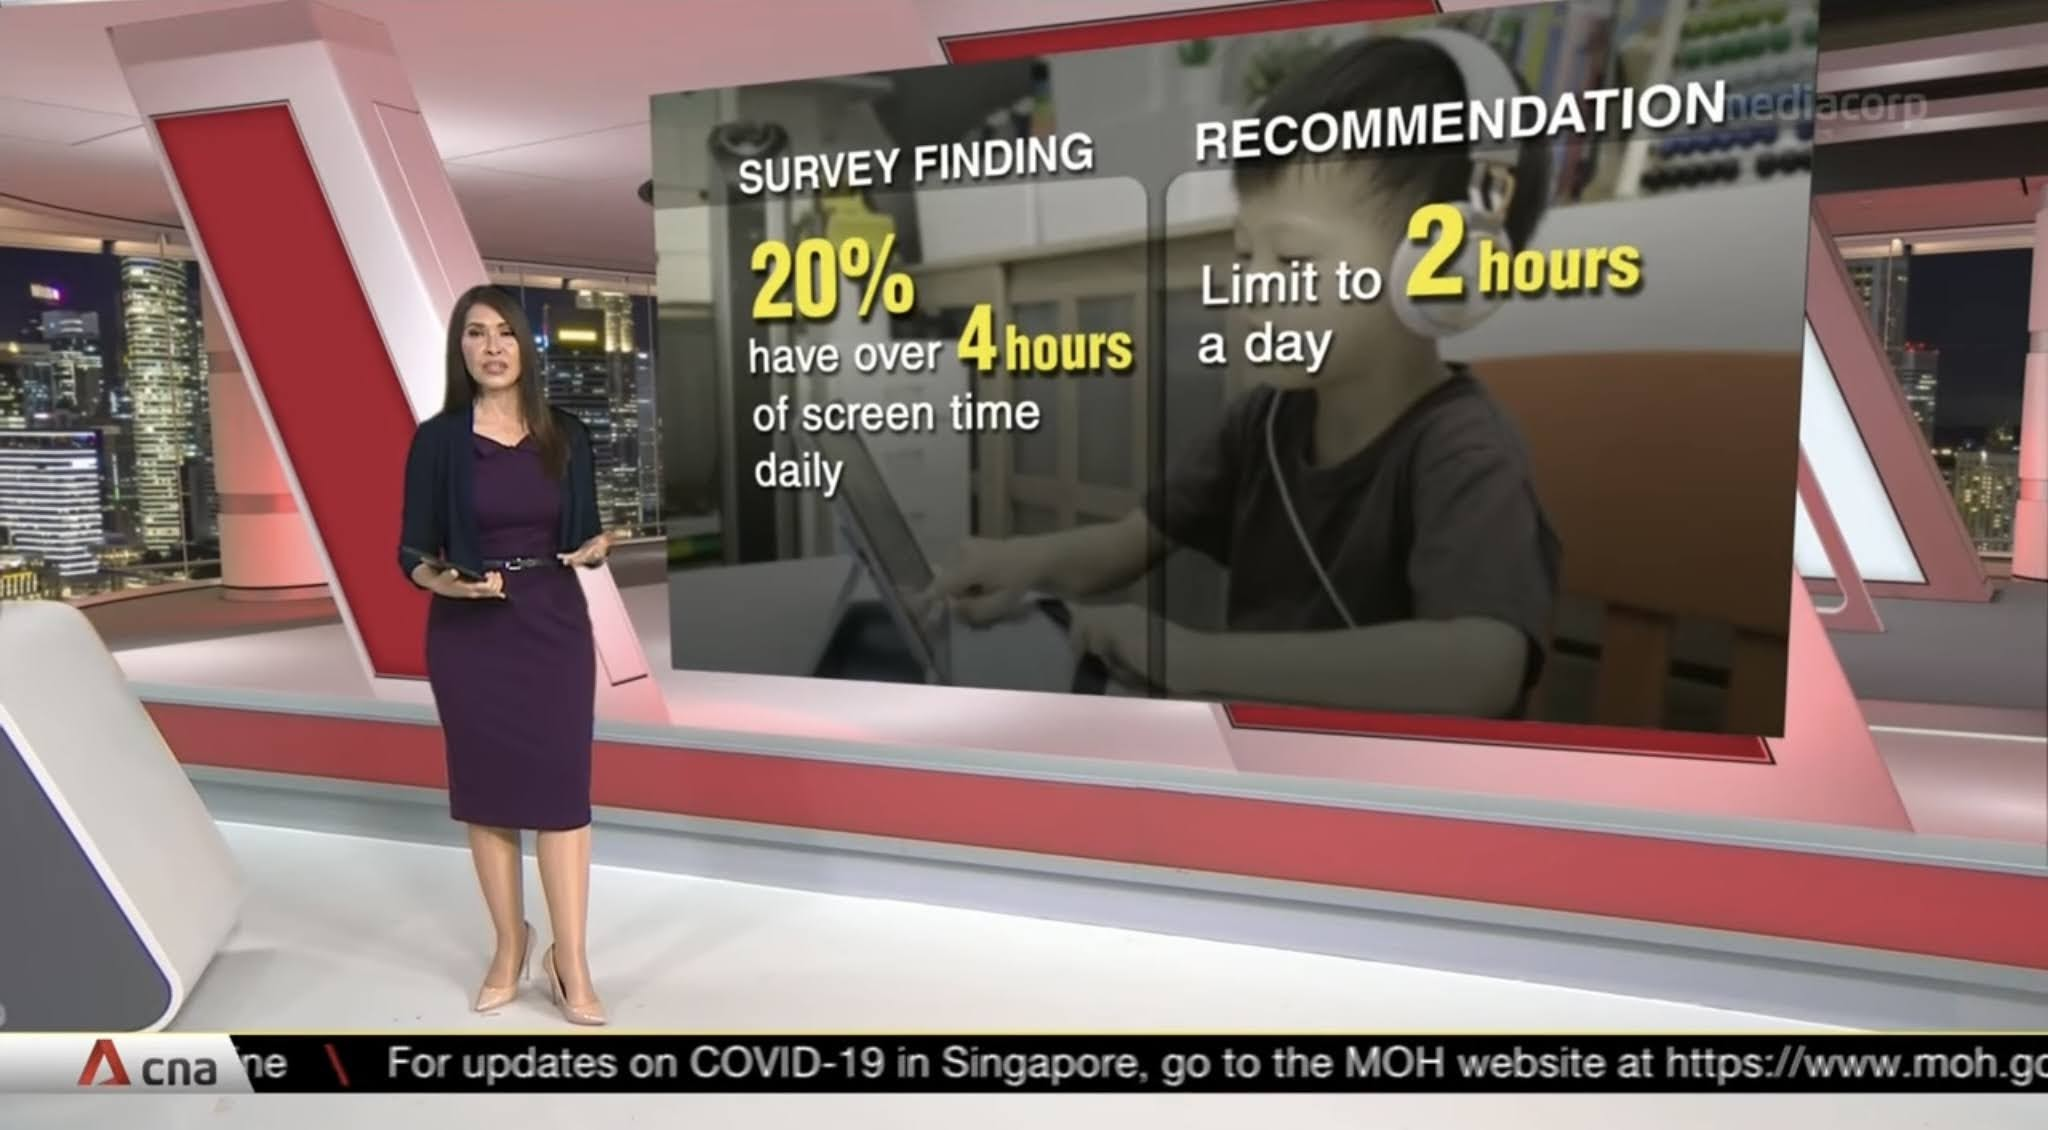 Screenshot of CNA programme on recommended screen time.